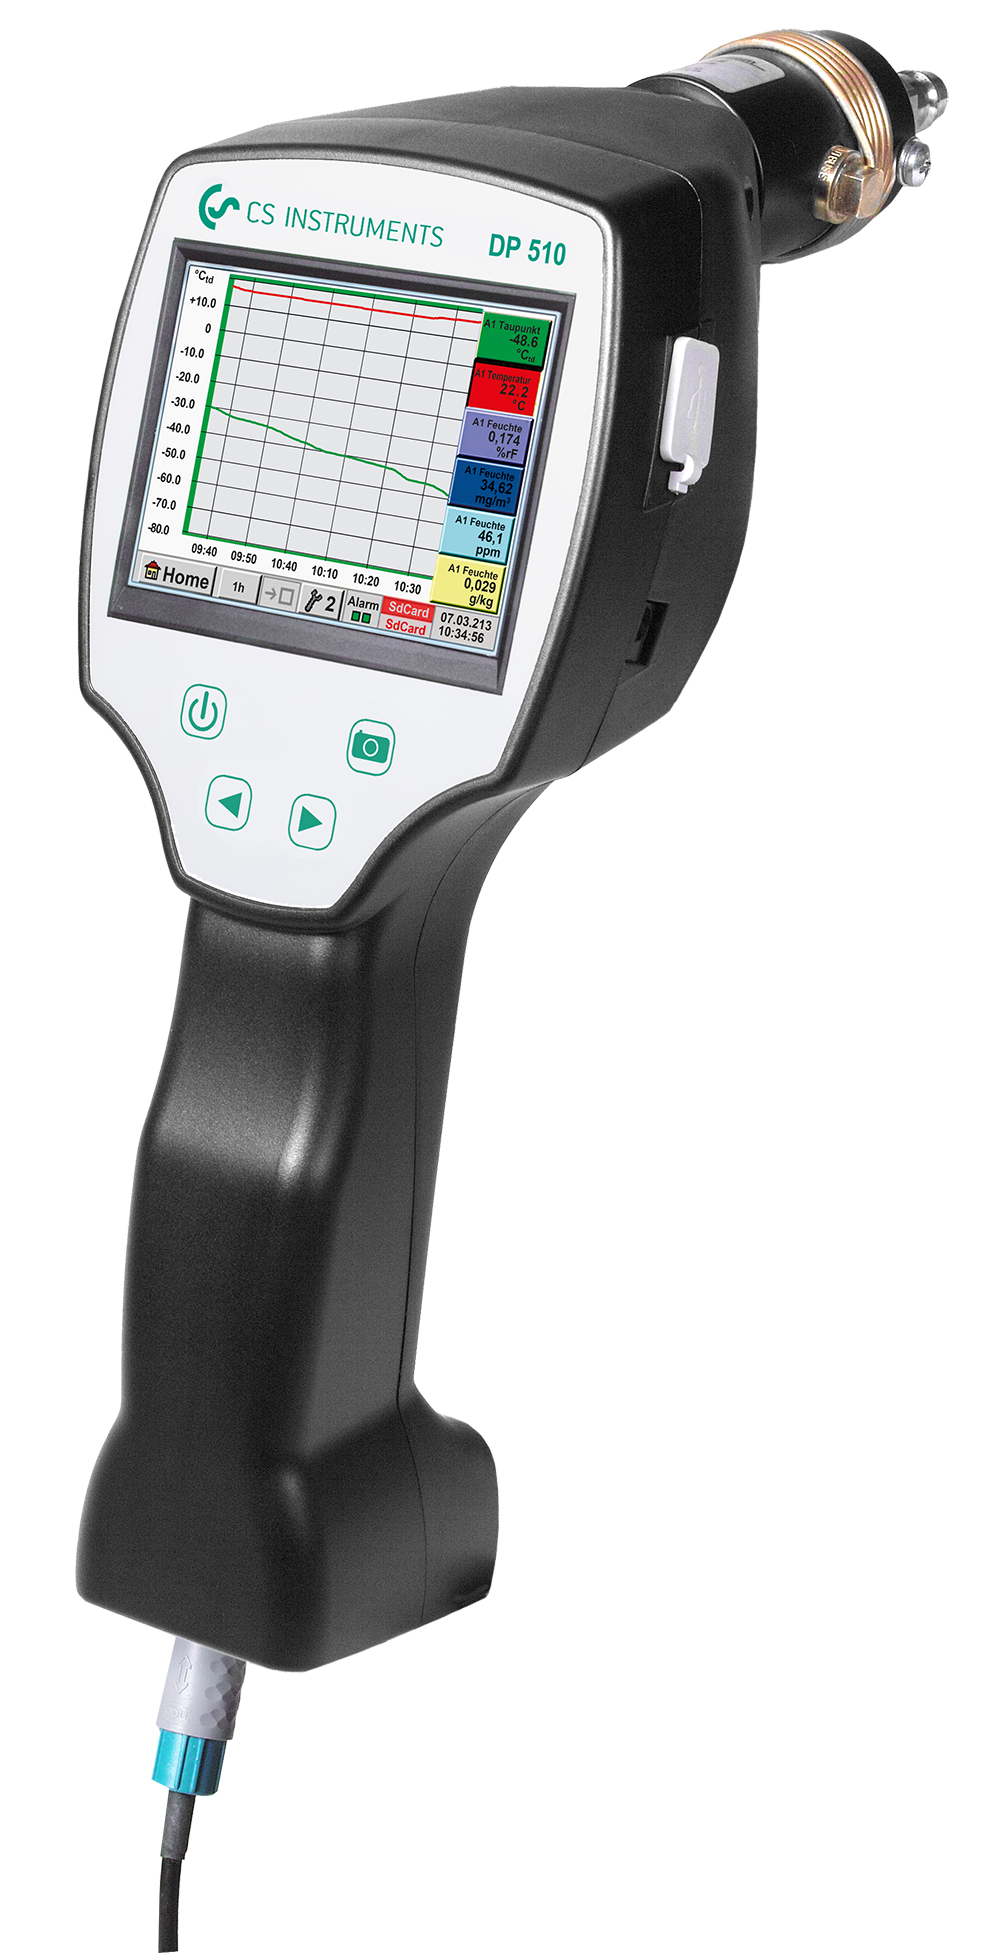 Portable dew point meter DP 510 with third party sensor